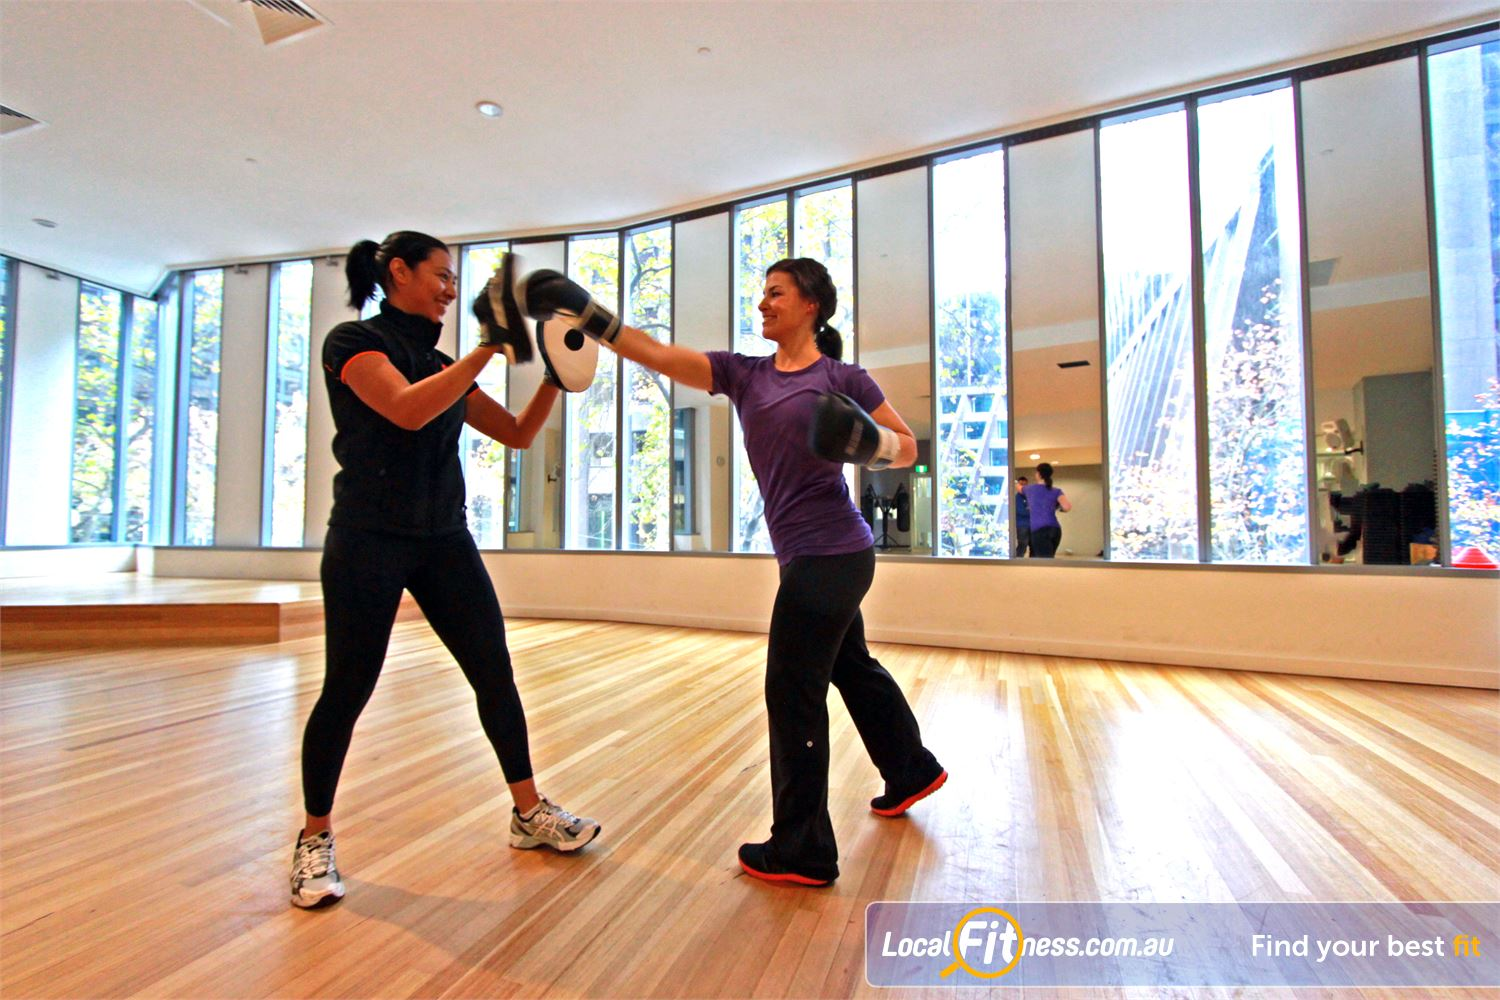 South Pacific Health Clubs Melbourne Burn calories with energetic boxing sessions with your personal trainer.